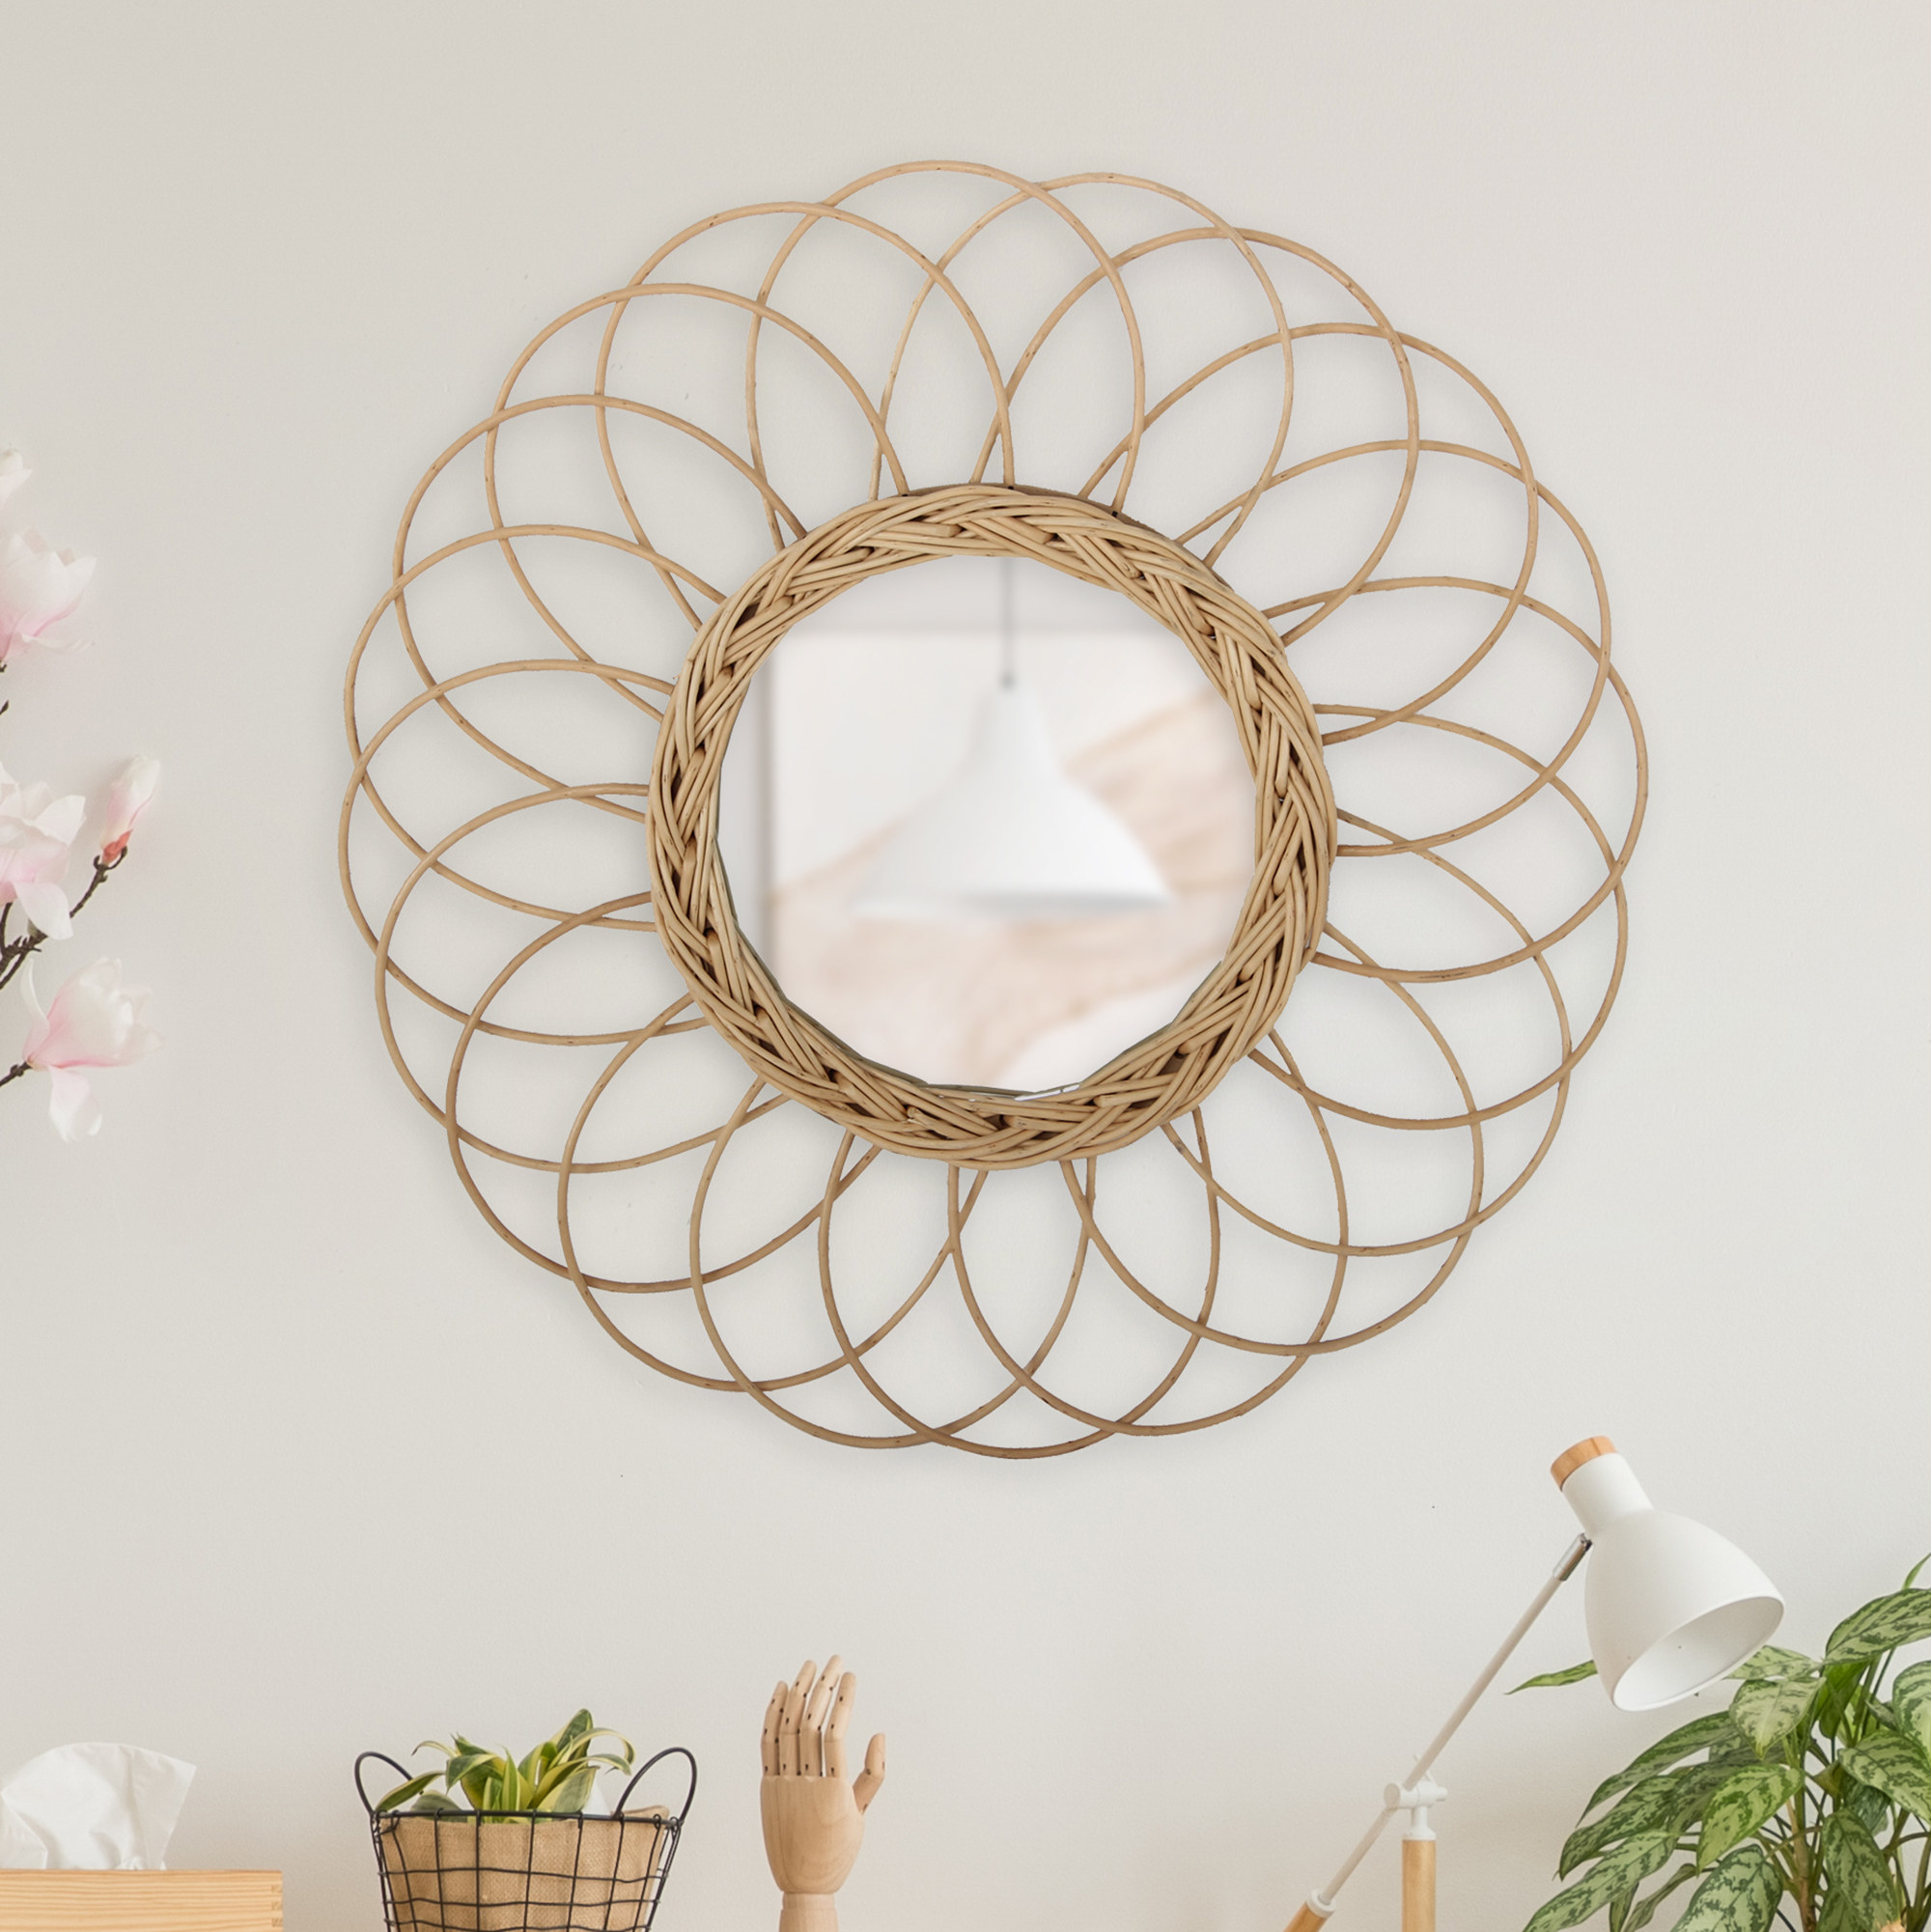 a 20 inch circular willow mirror on a wall